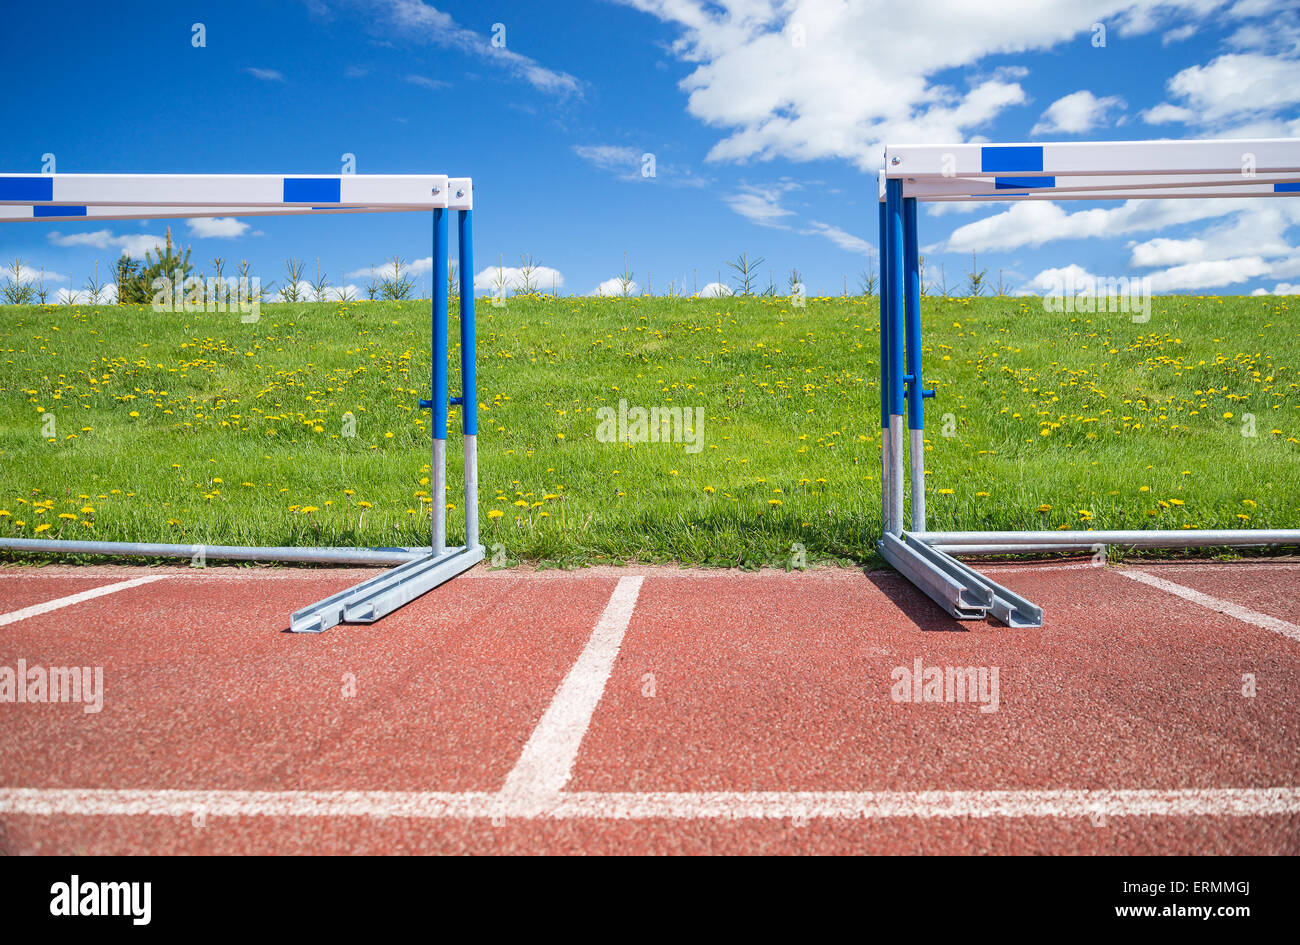 Hurdles stacked at the edge of athletics race track on a sunny summer day - Stock Image